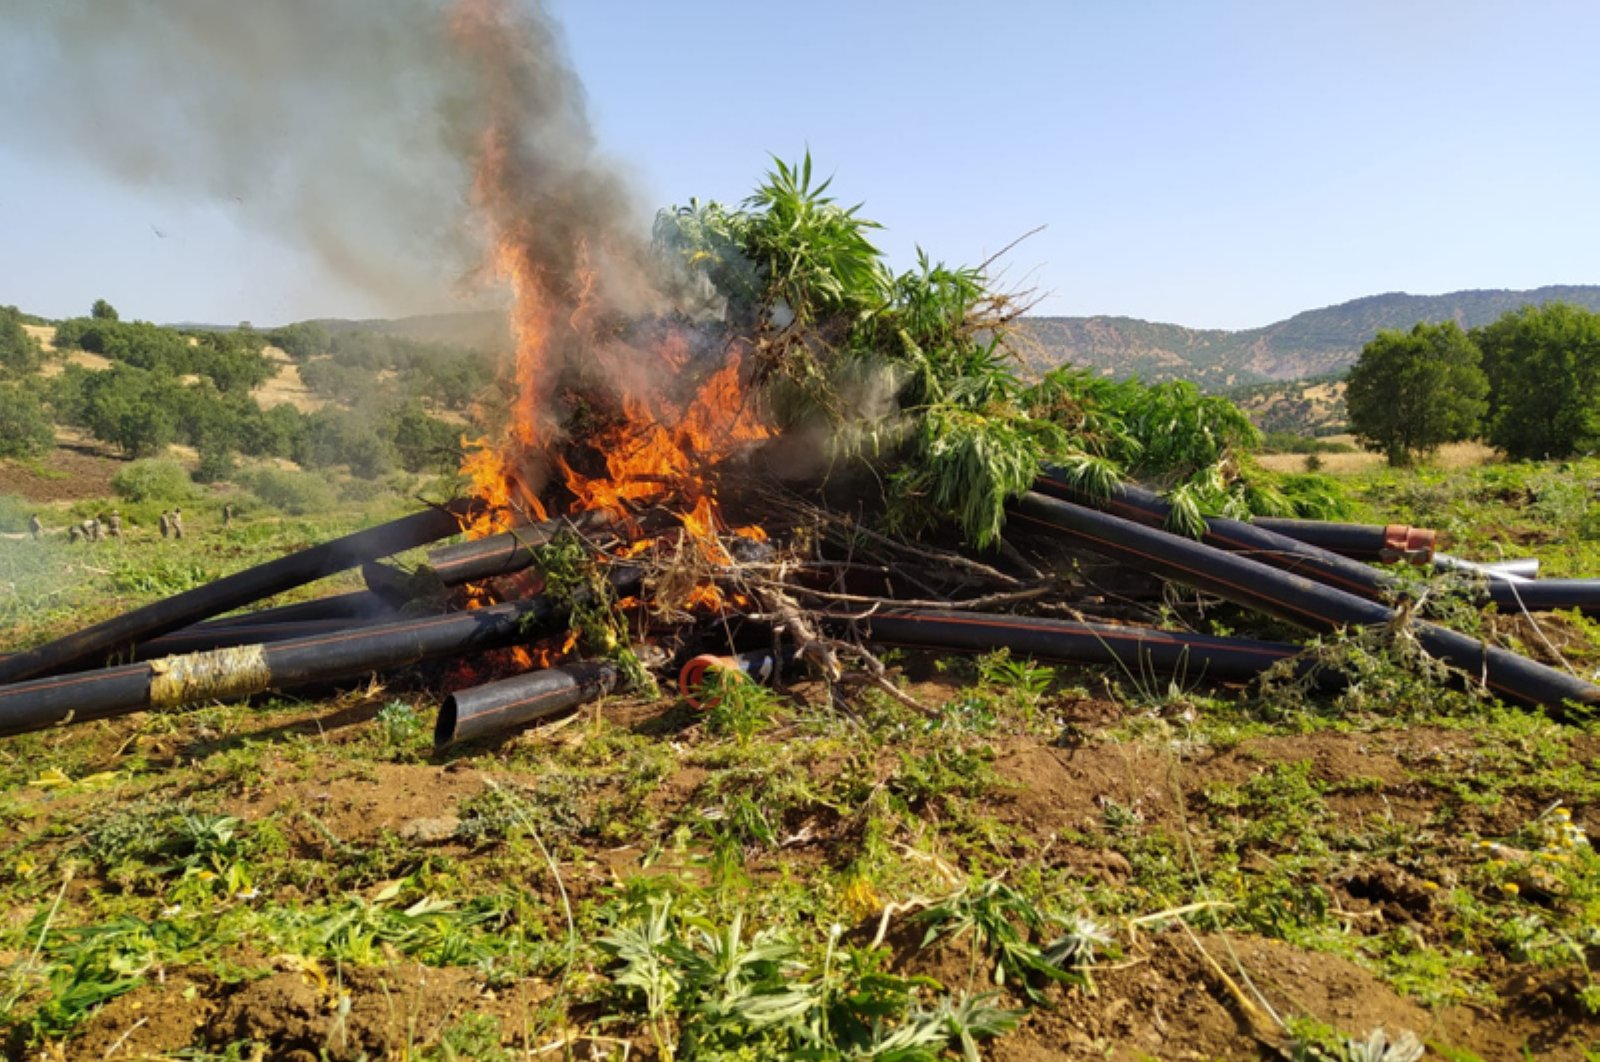 Seized cannabis roots and irrigation pipes are being destroyed in a field following a gendarmerie operation in the Lice district of Turkey's southeastern Diyarbakır province, July 10, 2020. (Diyarbakır Governorate via AA)